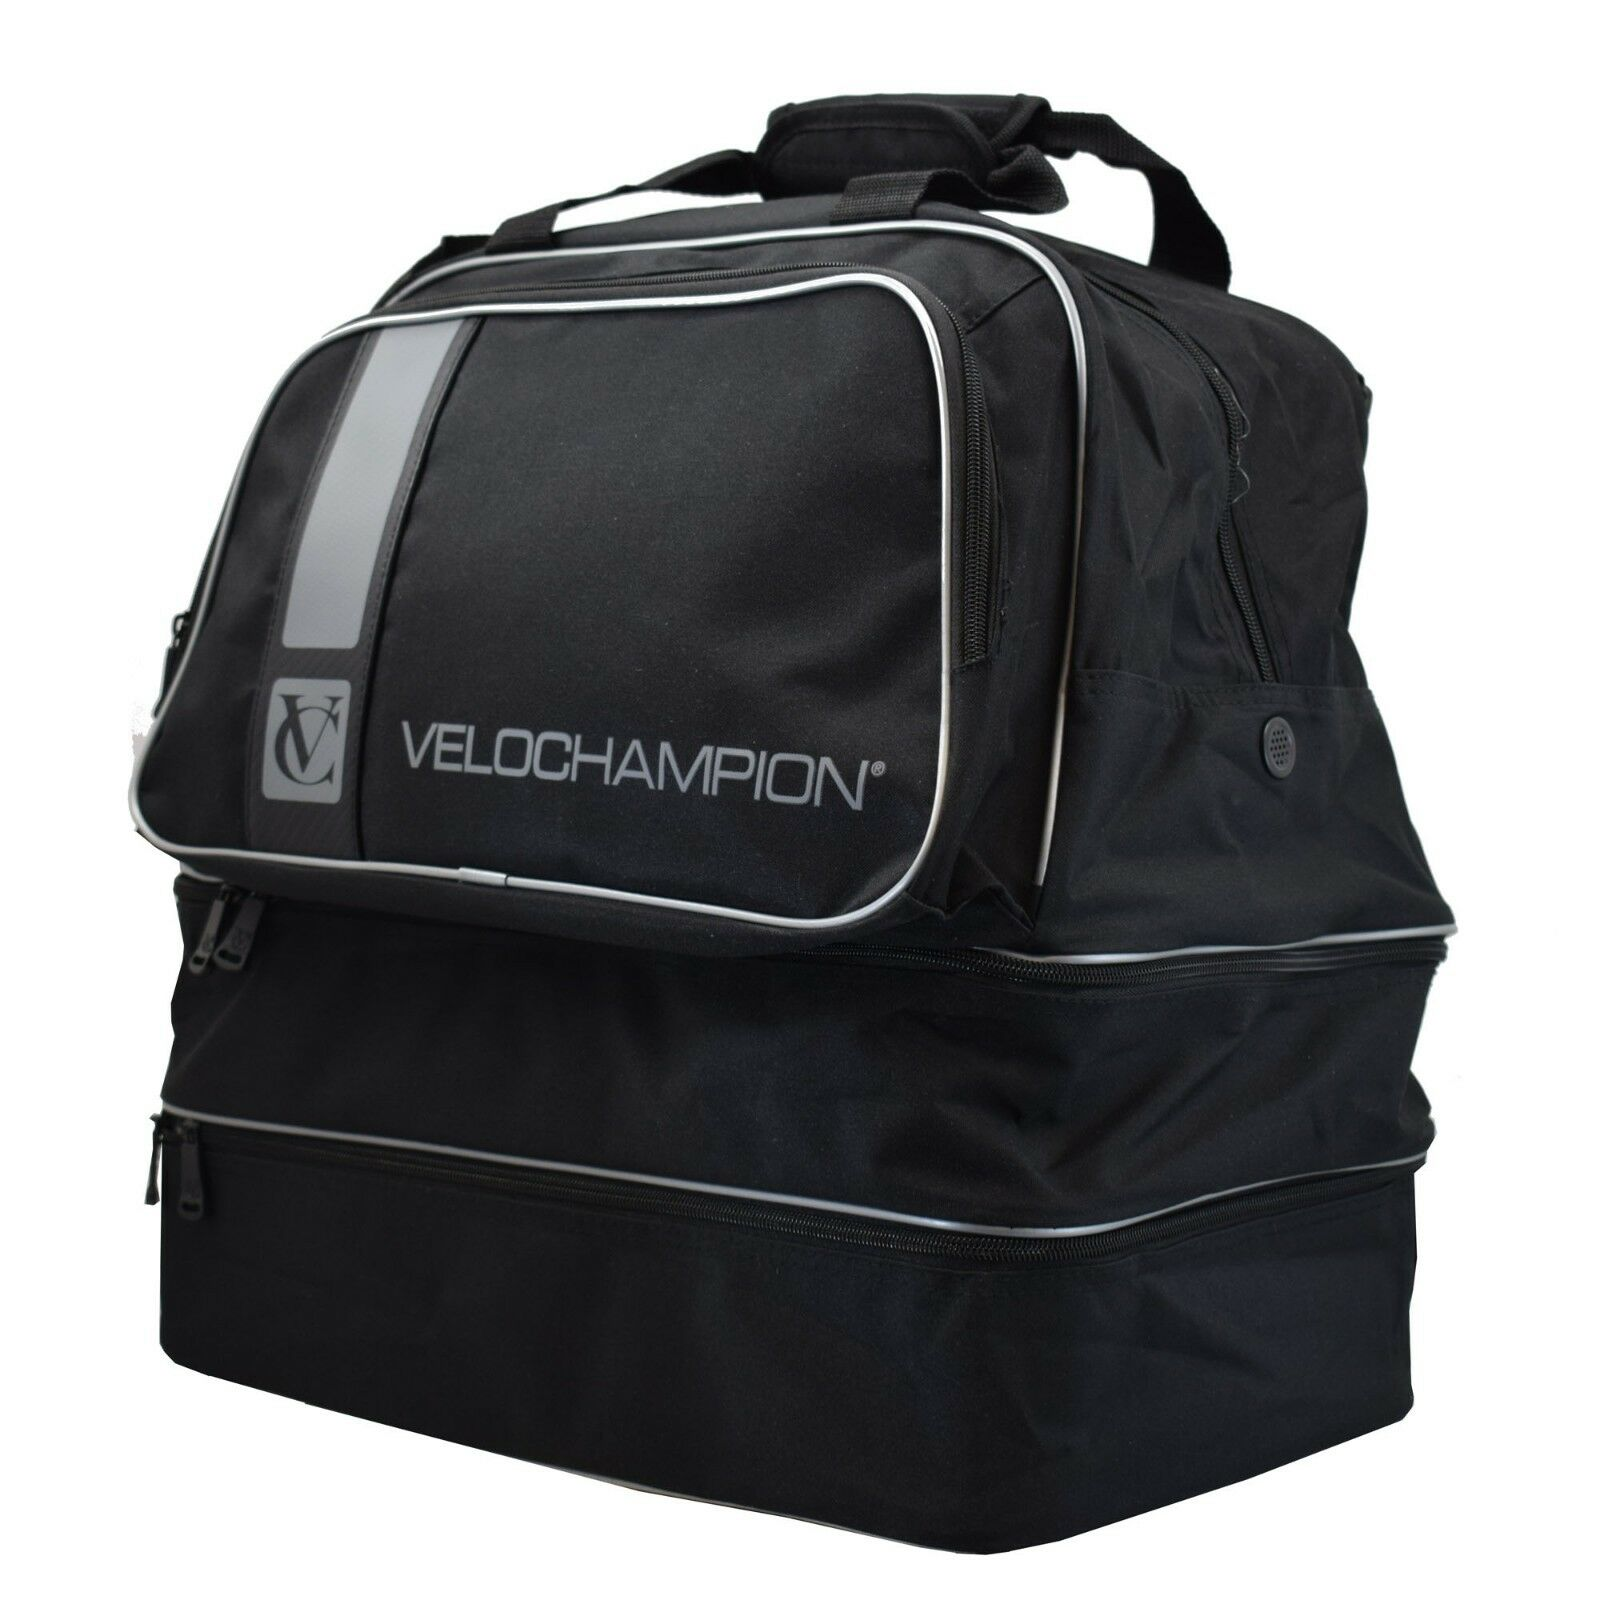 VeloChampion Sports Gym Travel Bag - Cycling Kit Storage Sports Hiking Holdall